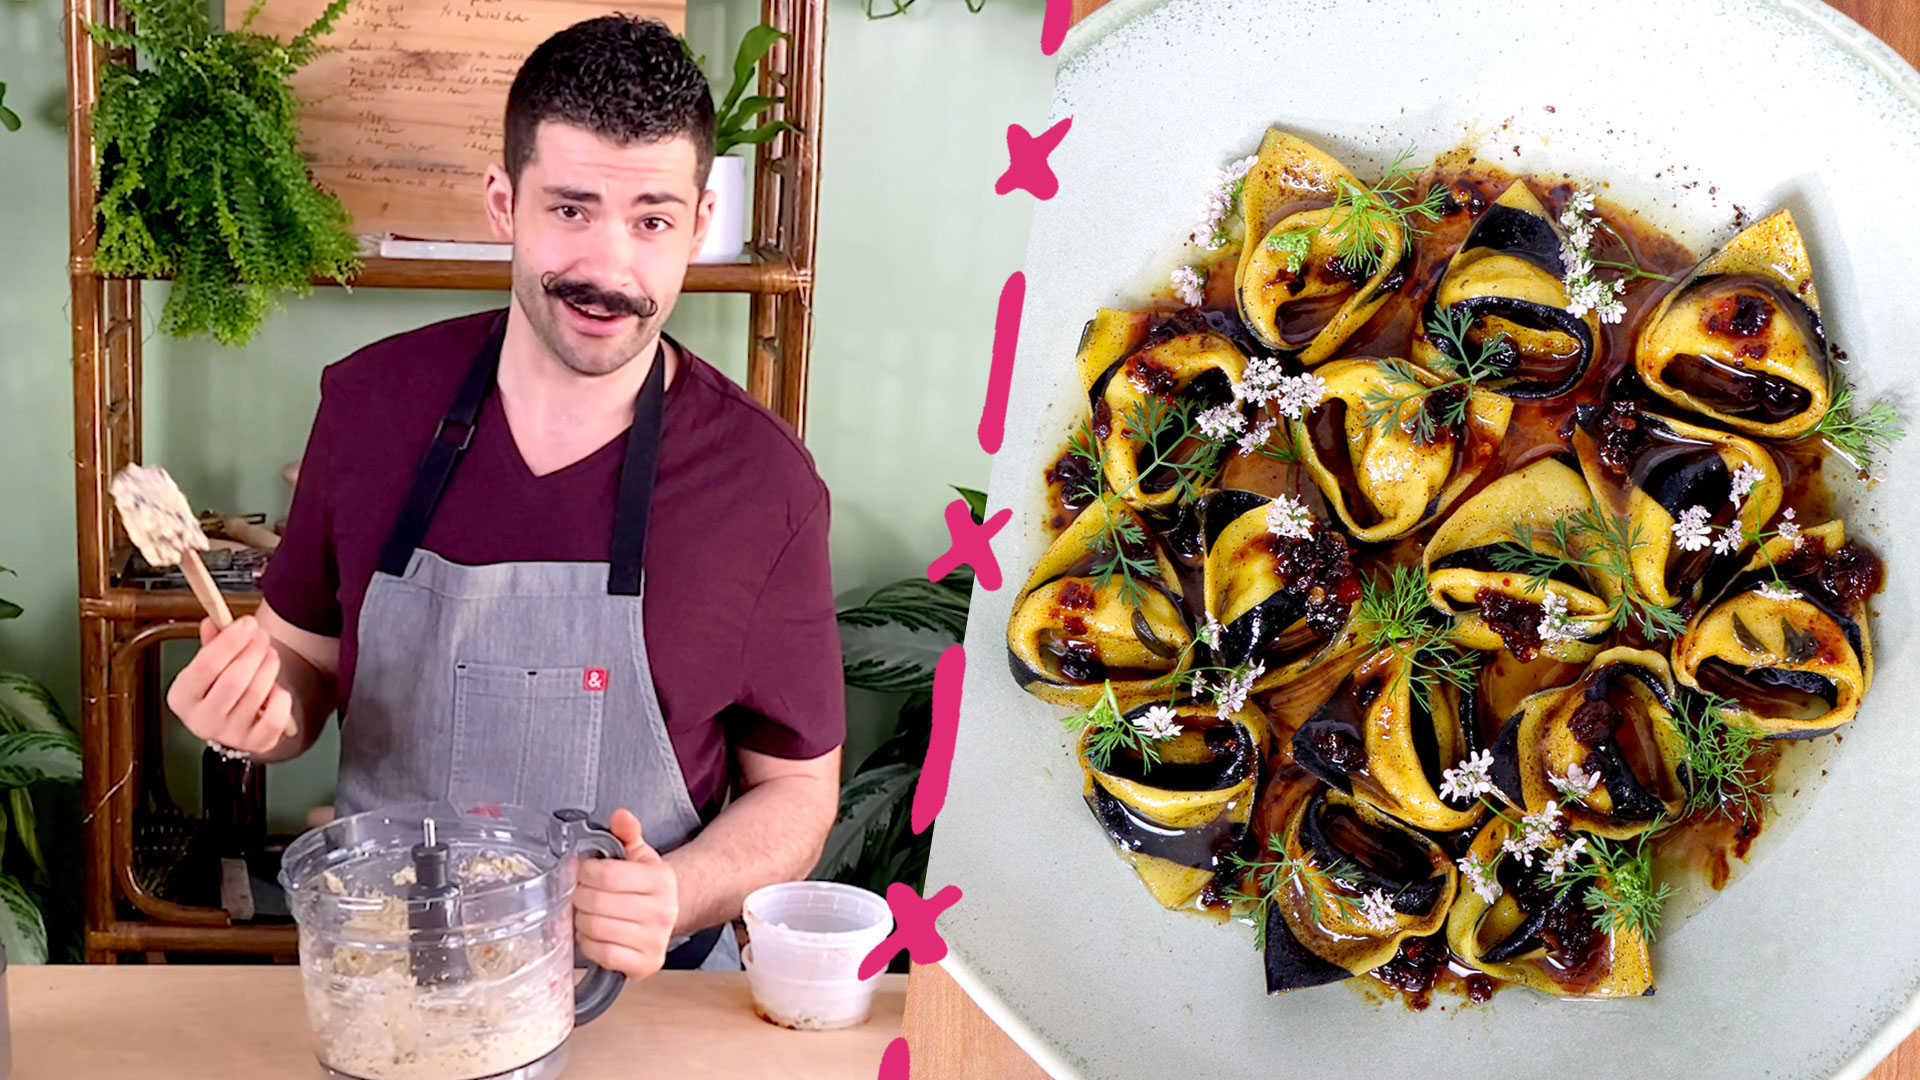 Joe Sasto's Spicy Crab-Stuffed Striped Tortelloni Is a Work of Art